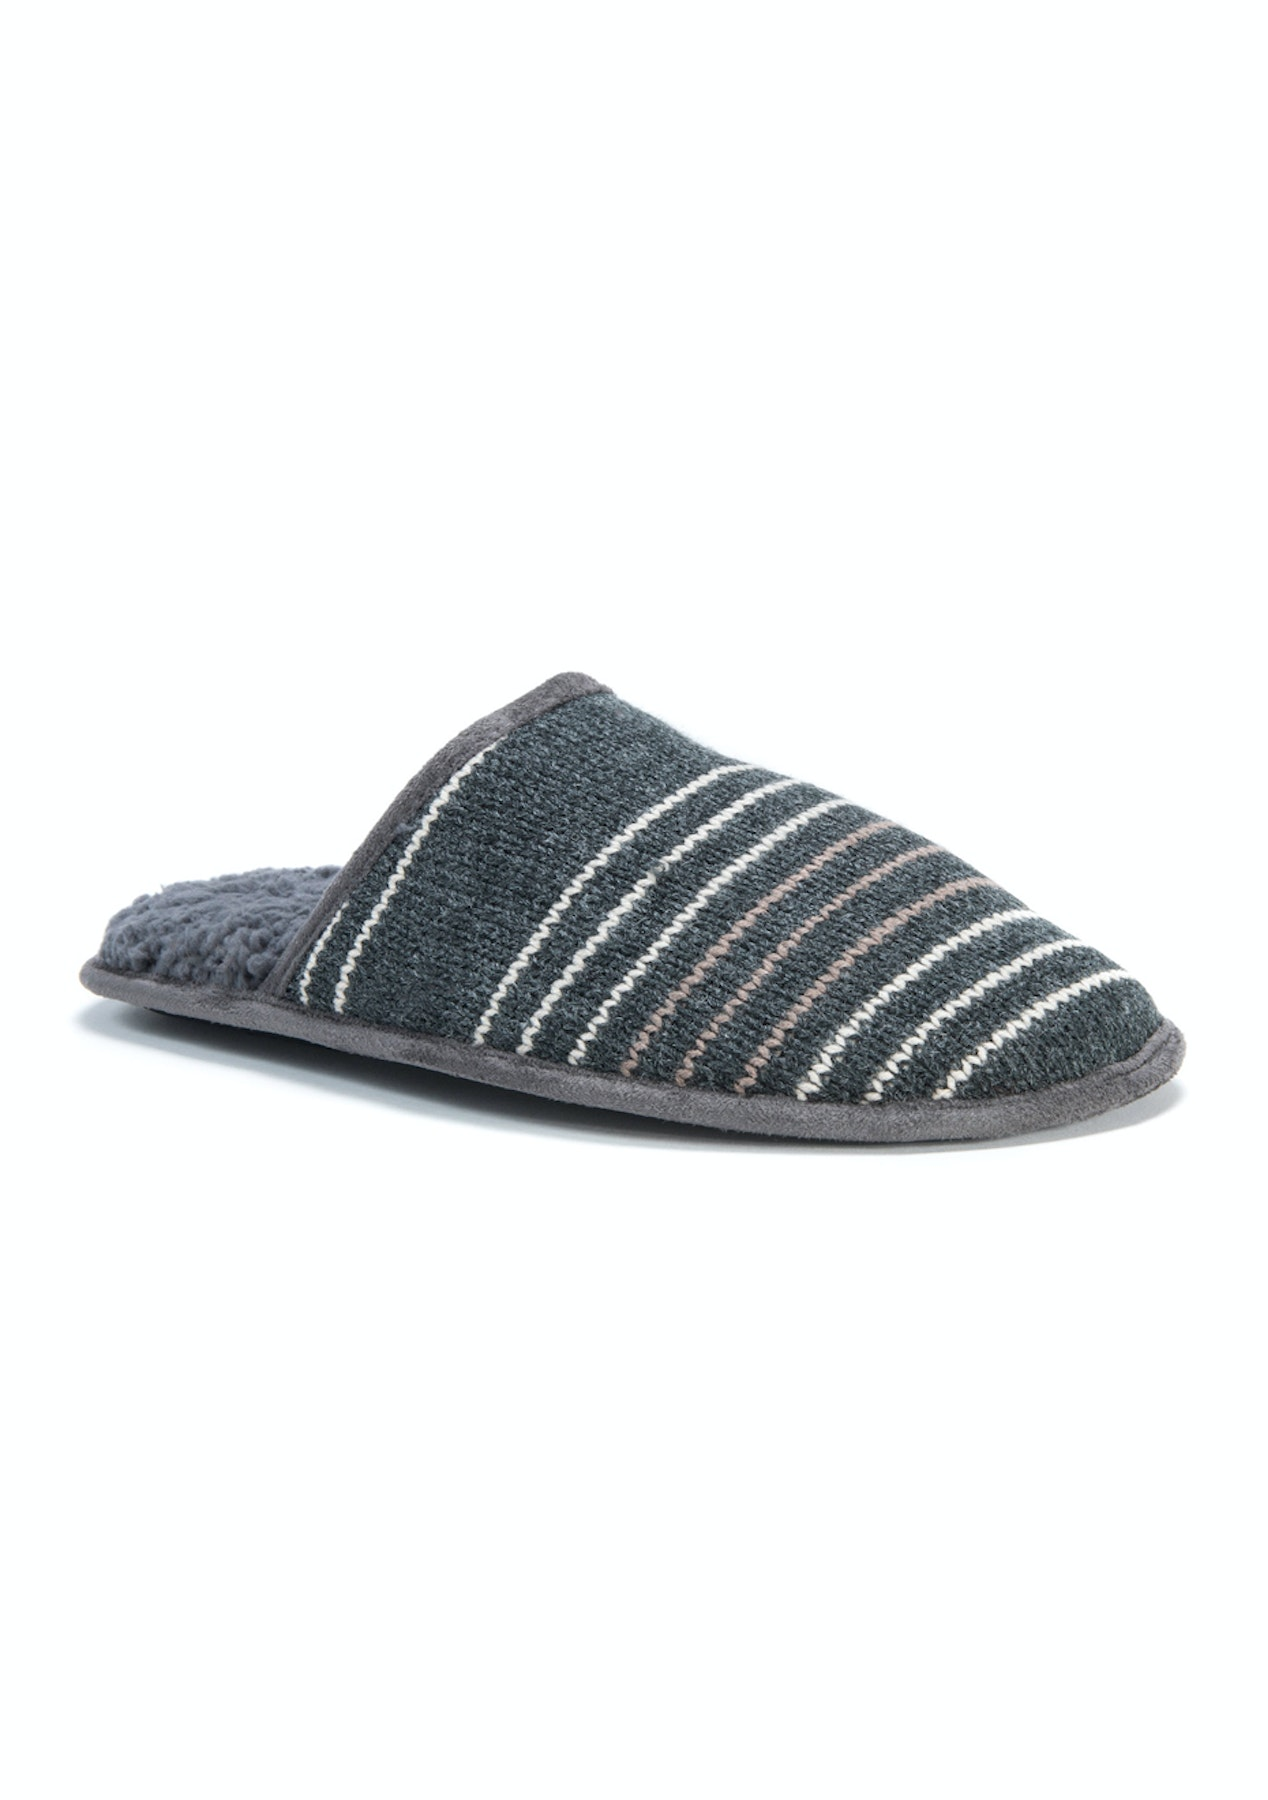 7536919c5c4 Muk Luks - Men s Gavin Slippers - Grey - Grey - Cozy Slippers for the Whole  Family - Onceit